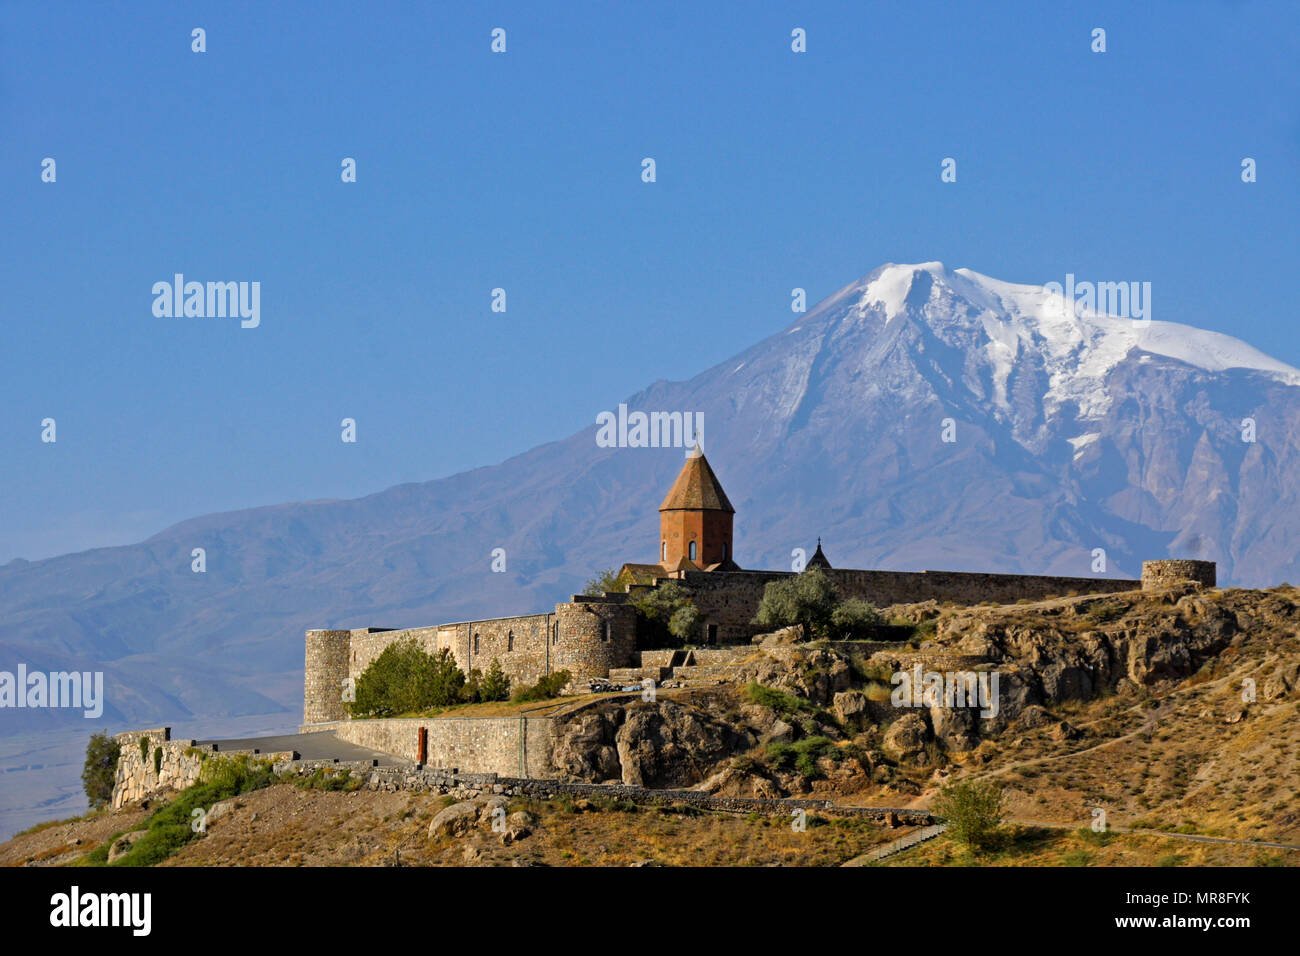 Khor Virap Monastery and Mount Ararat, Armenia - Stock Image